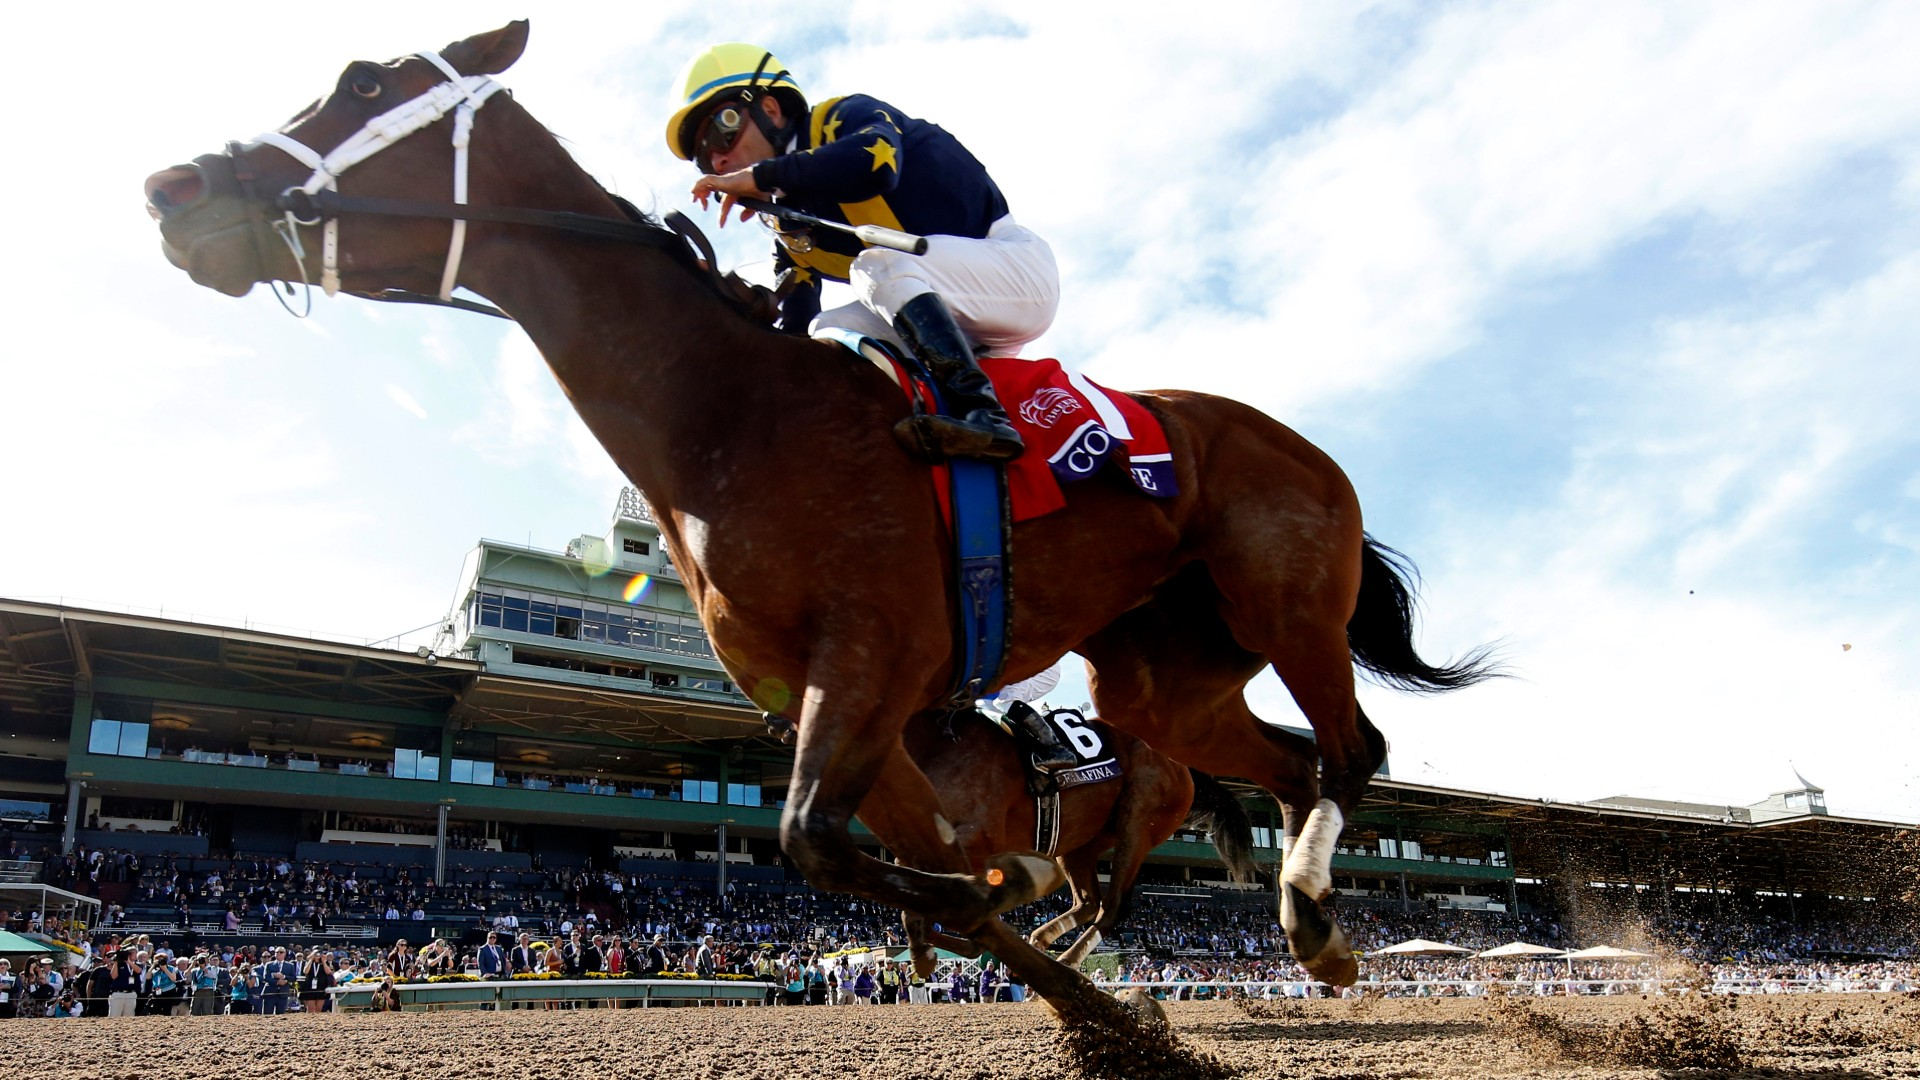 Jockey Joel Rosario aboard Covfefe wins the Filly and Mare race during the Breeders Cup at Santa Anita Park on Nov. 02, 2019. (Sean M. Haffey/Getty Images)